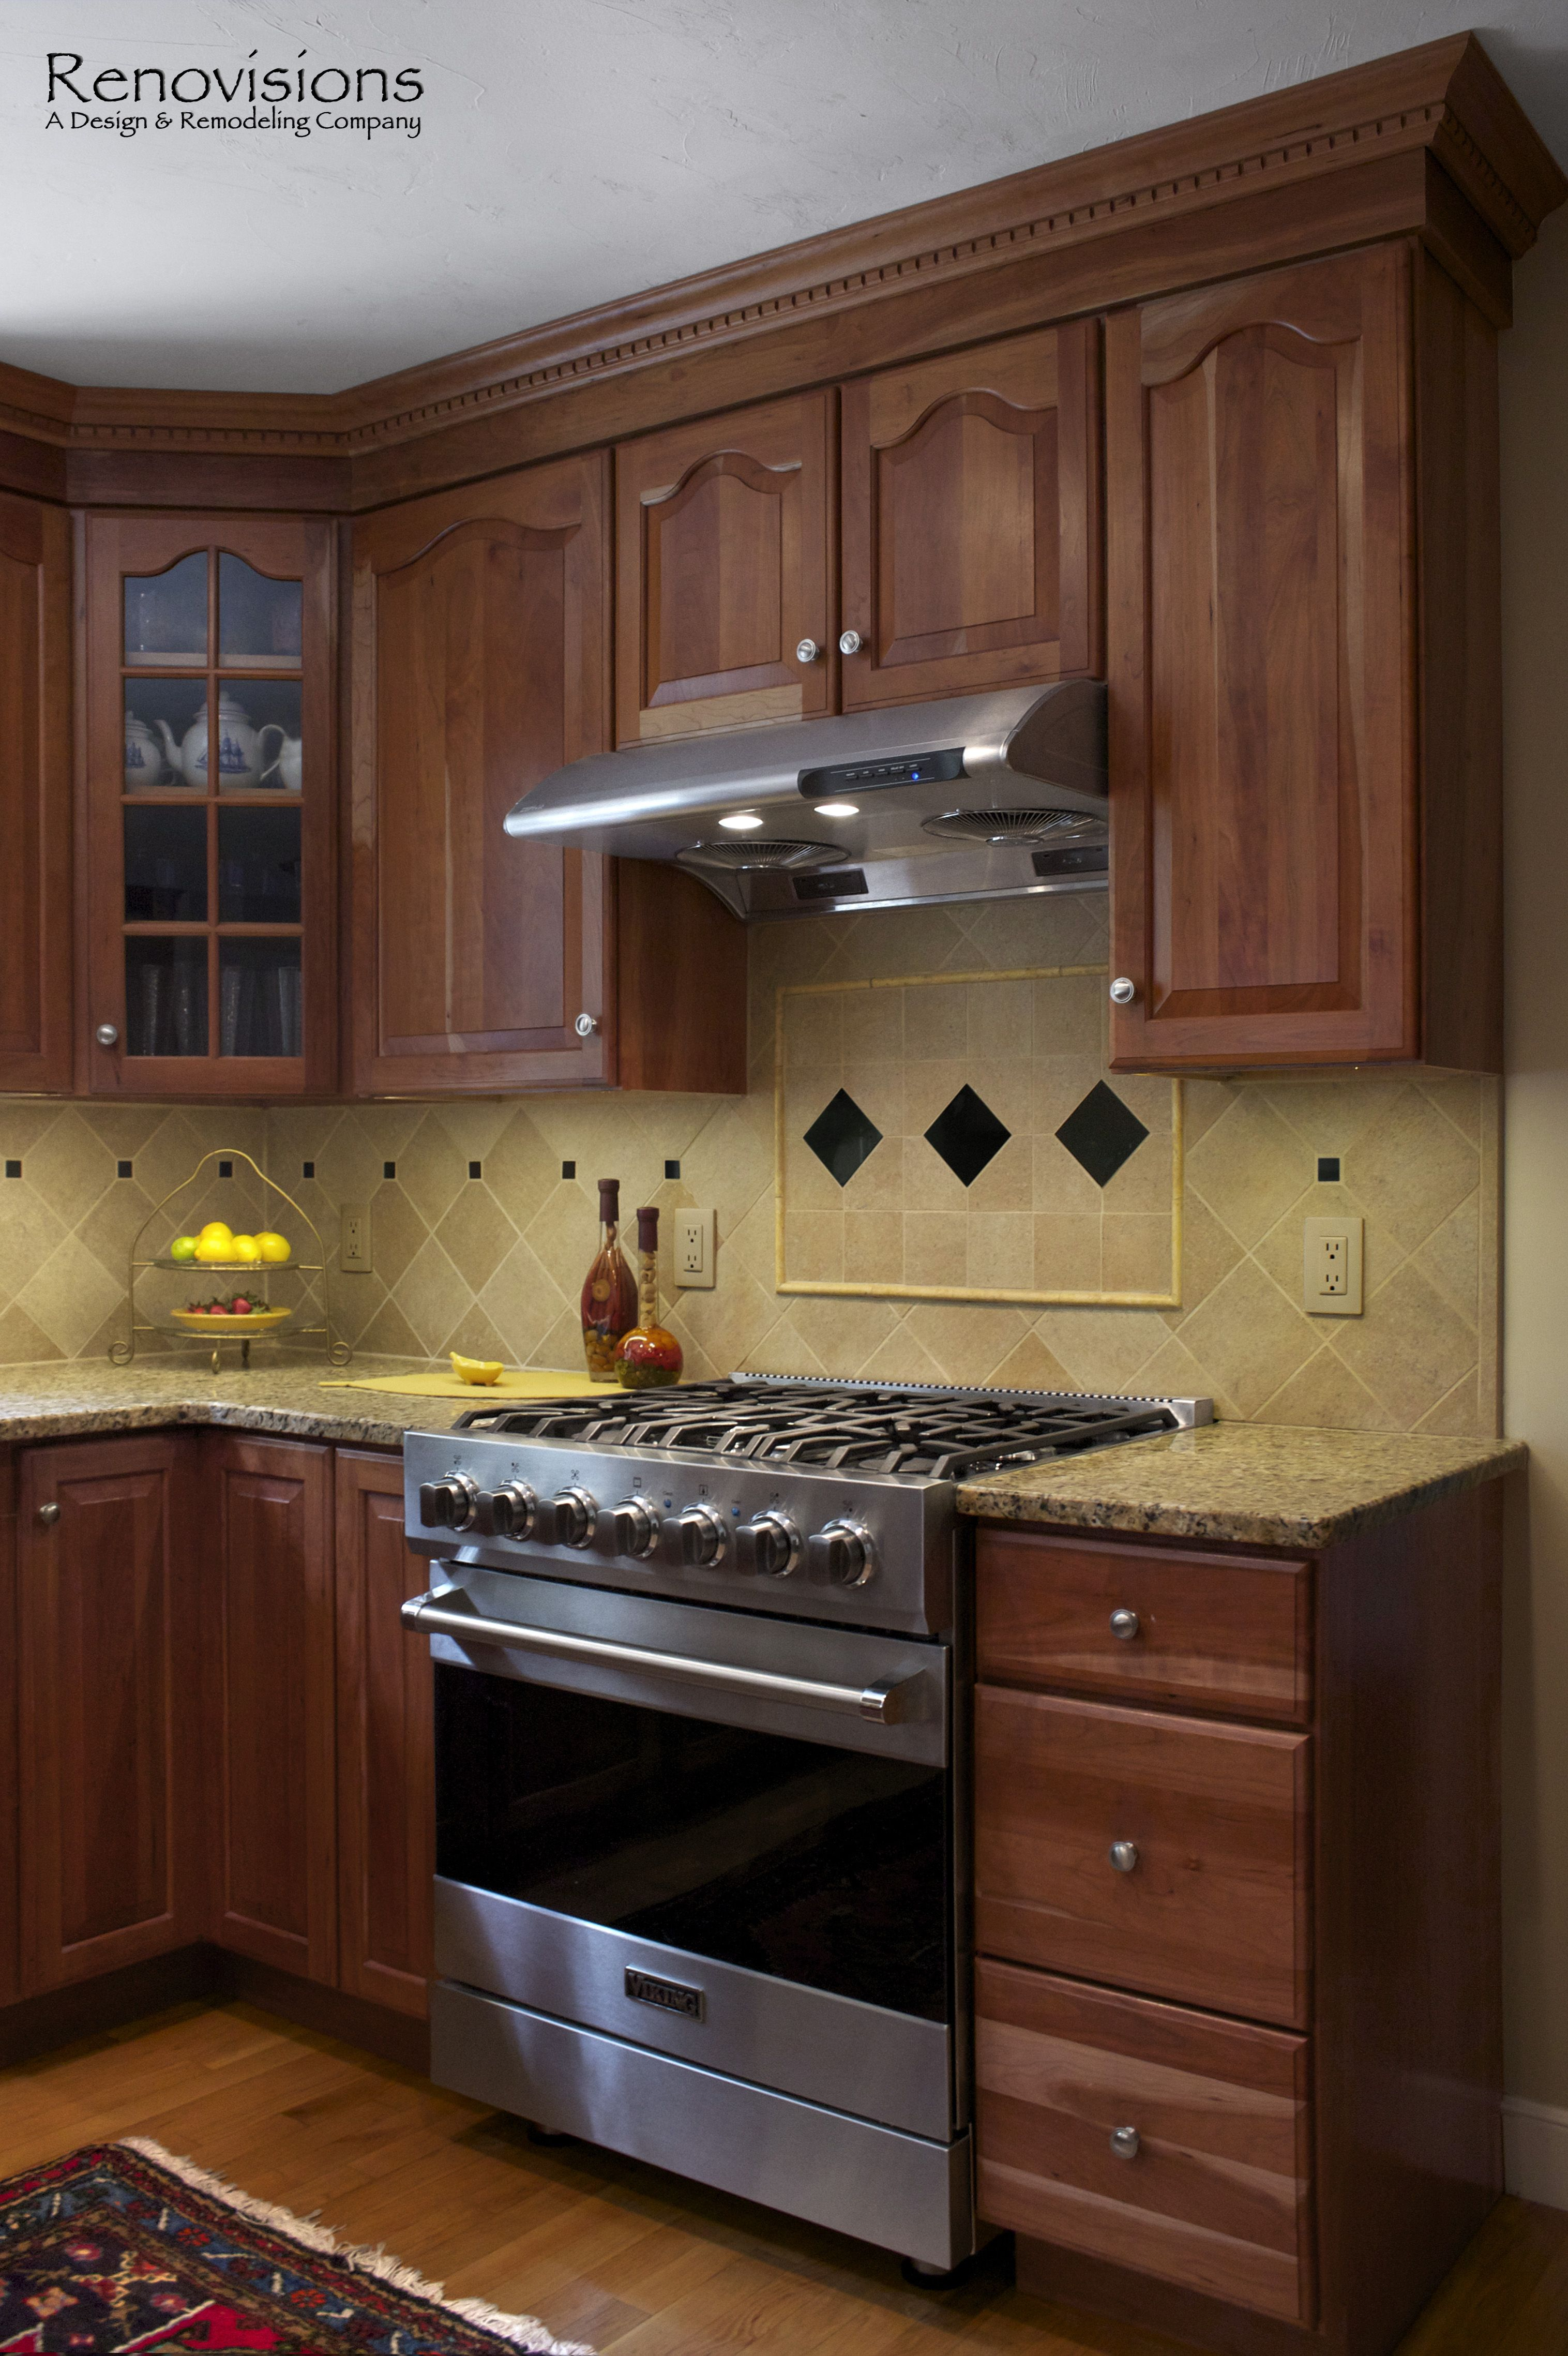 Kitchen Remodel Pictures Cherry Cabinets Kitchen Remodelrenovisionsdecorative Tan And Black Tile